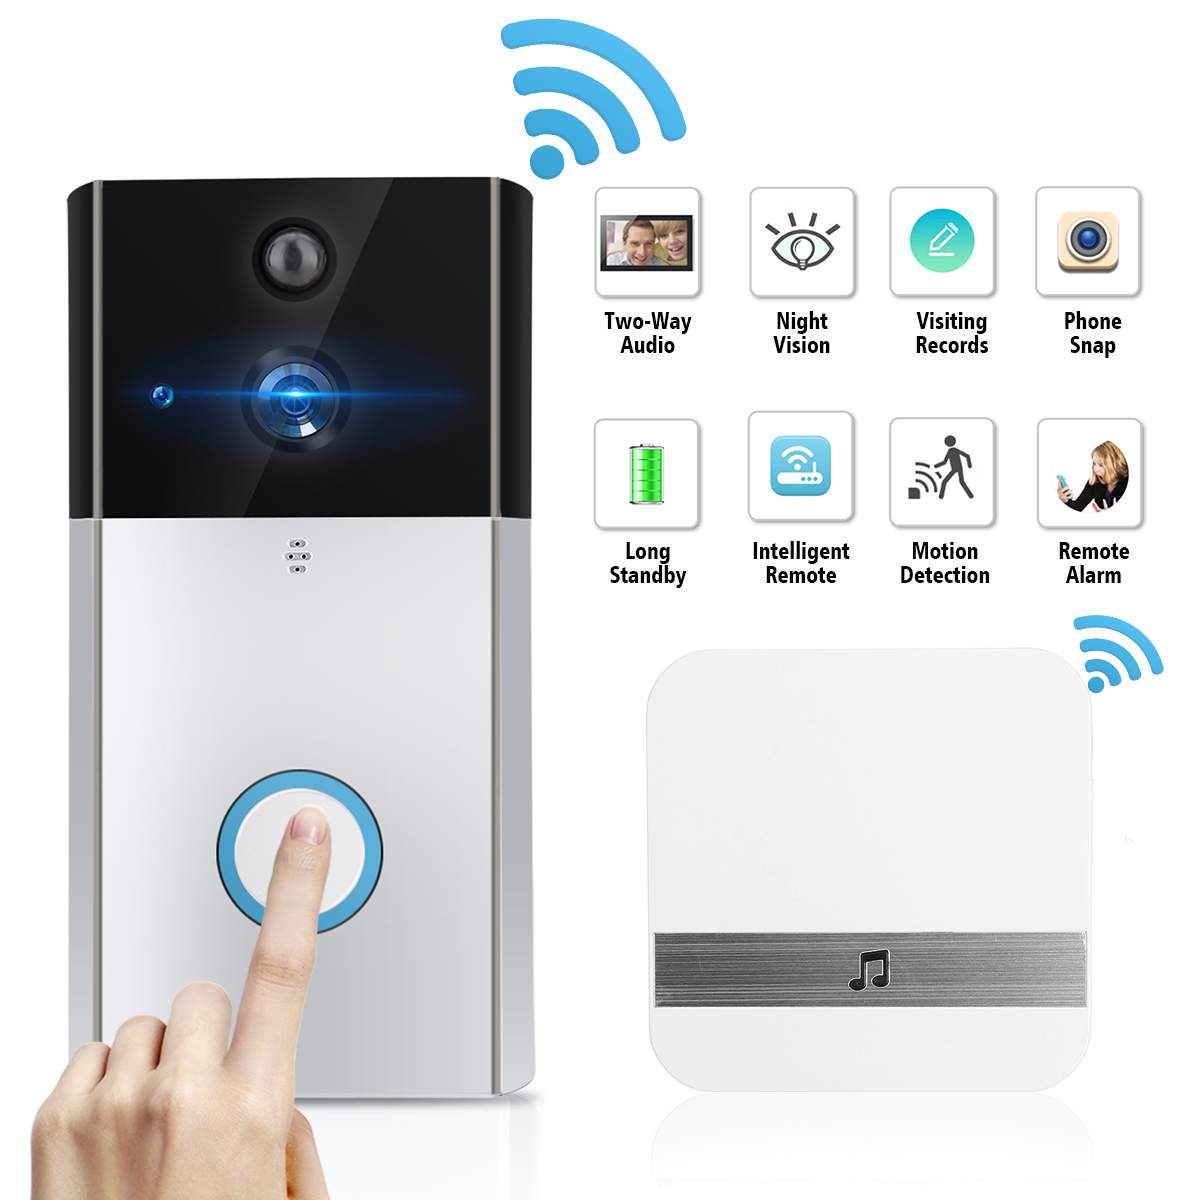 Wireless Video DoorBell Camera 720P HD Smart Intercom Home Security Ring WiFi Remote Phone DoorBell for